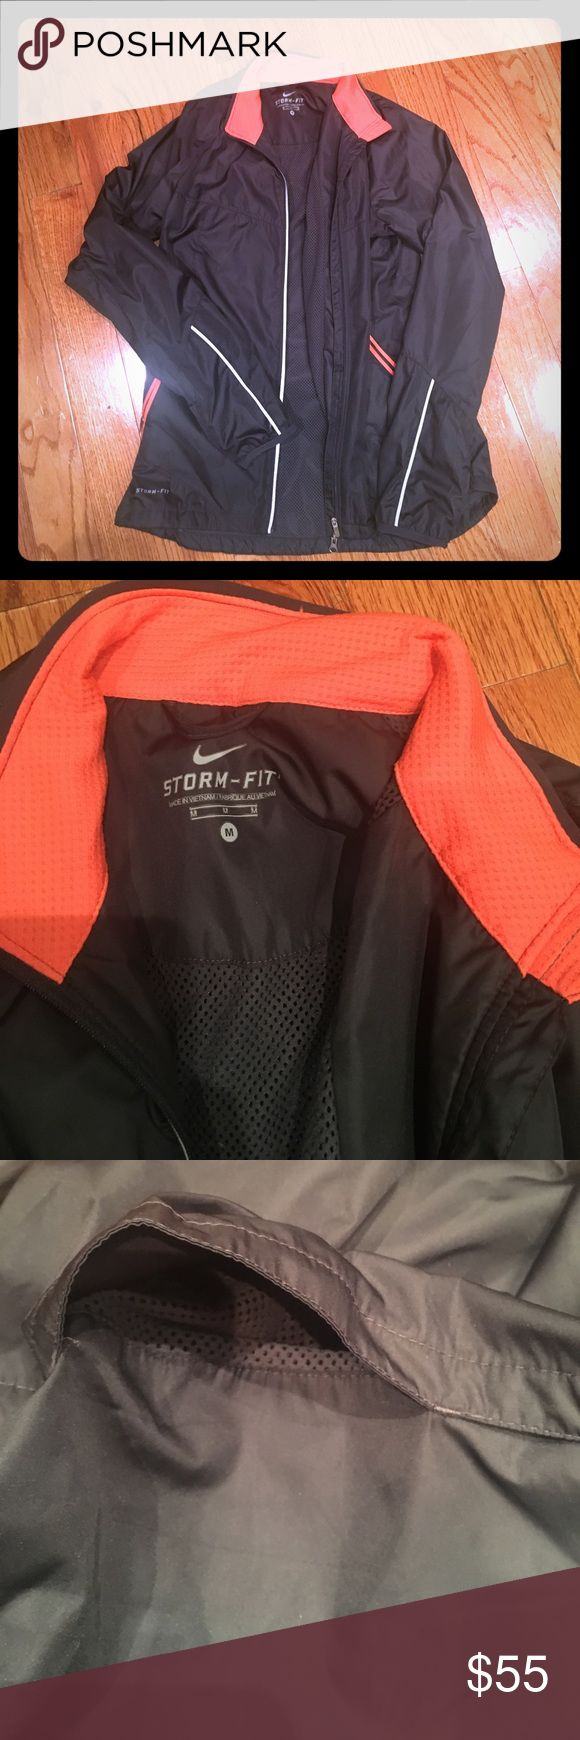 Medium women's Nike storm fit zip up jacket This is an extremely comfortable Nike storm fit zip up jacket in gray with orange lining. Two side pockets and one back pocket for keys and credit cards. Until later flap on back. Collared. Comfortable inner lining and wind and water protective outer lining. Nike Jackets & Coats